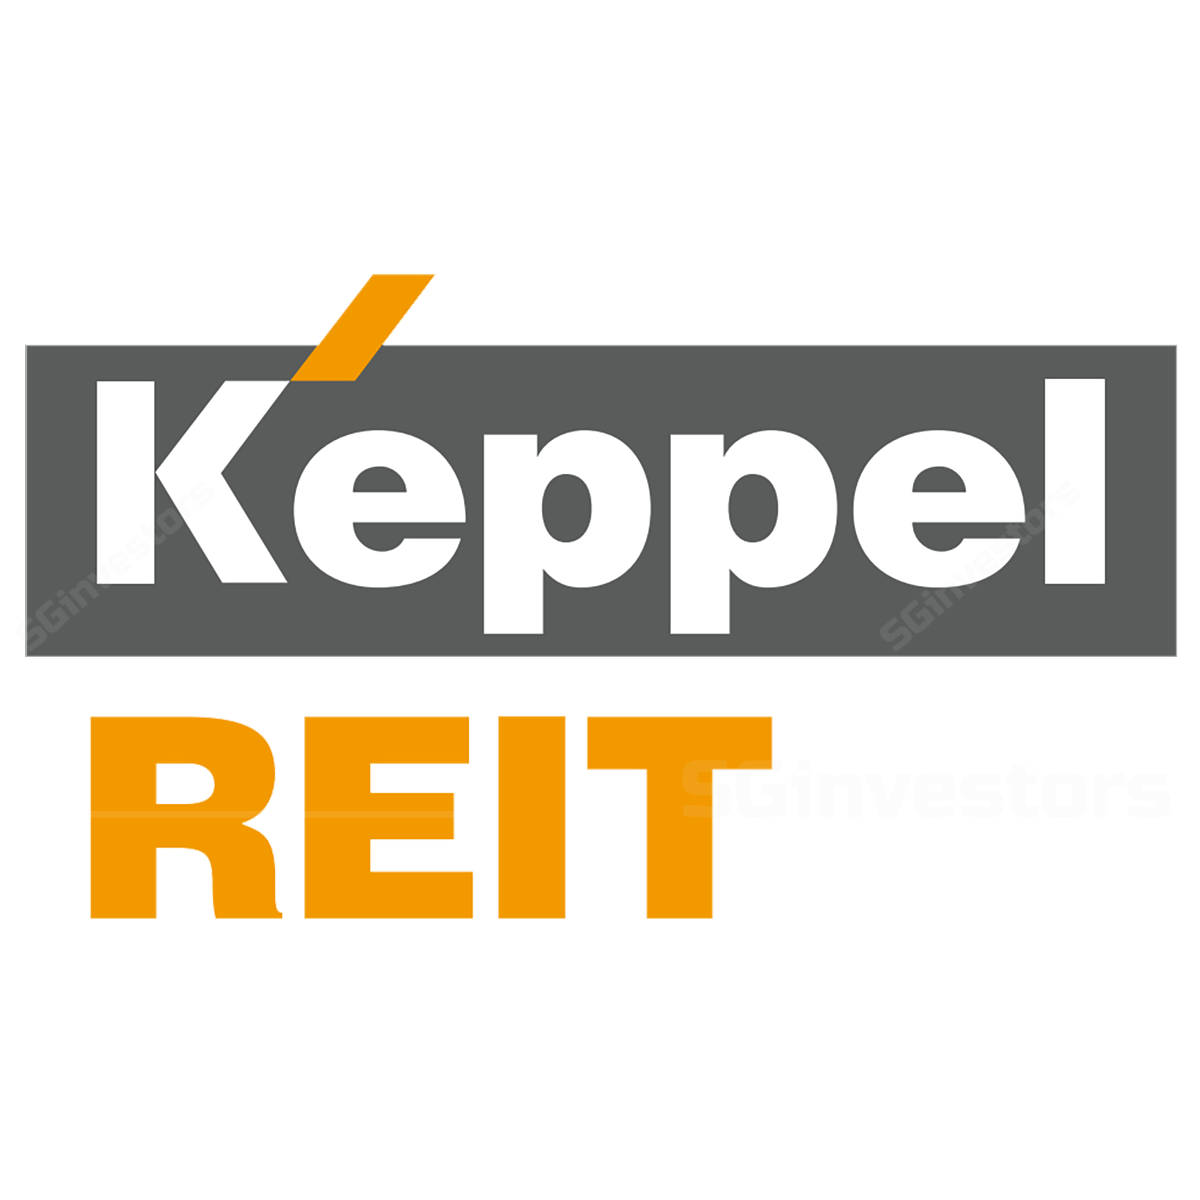 REITs − Singapore - UOB Kay Hian 2017-01-25: 4Q16 Results Of KREIT (Below), MIT (Above), ART (In Line)